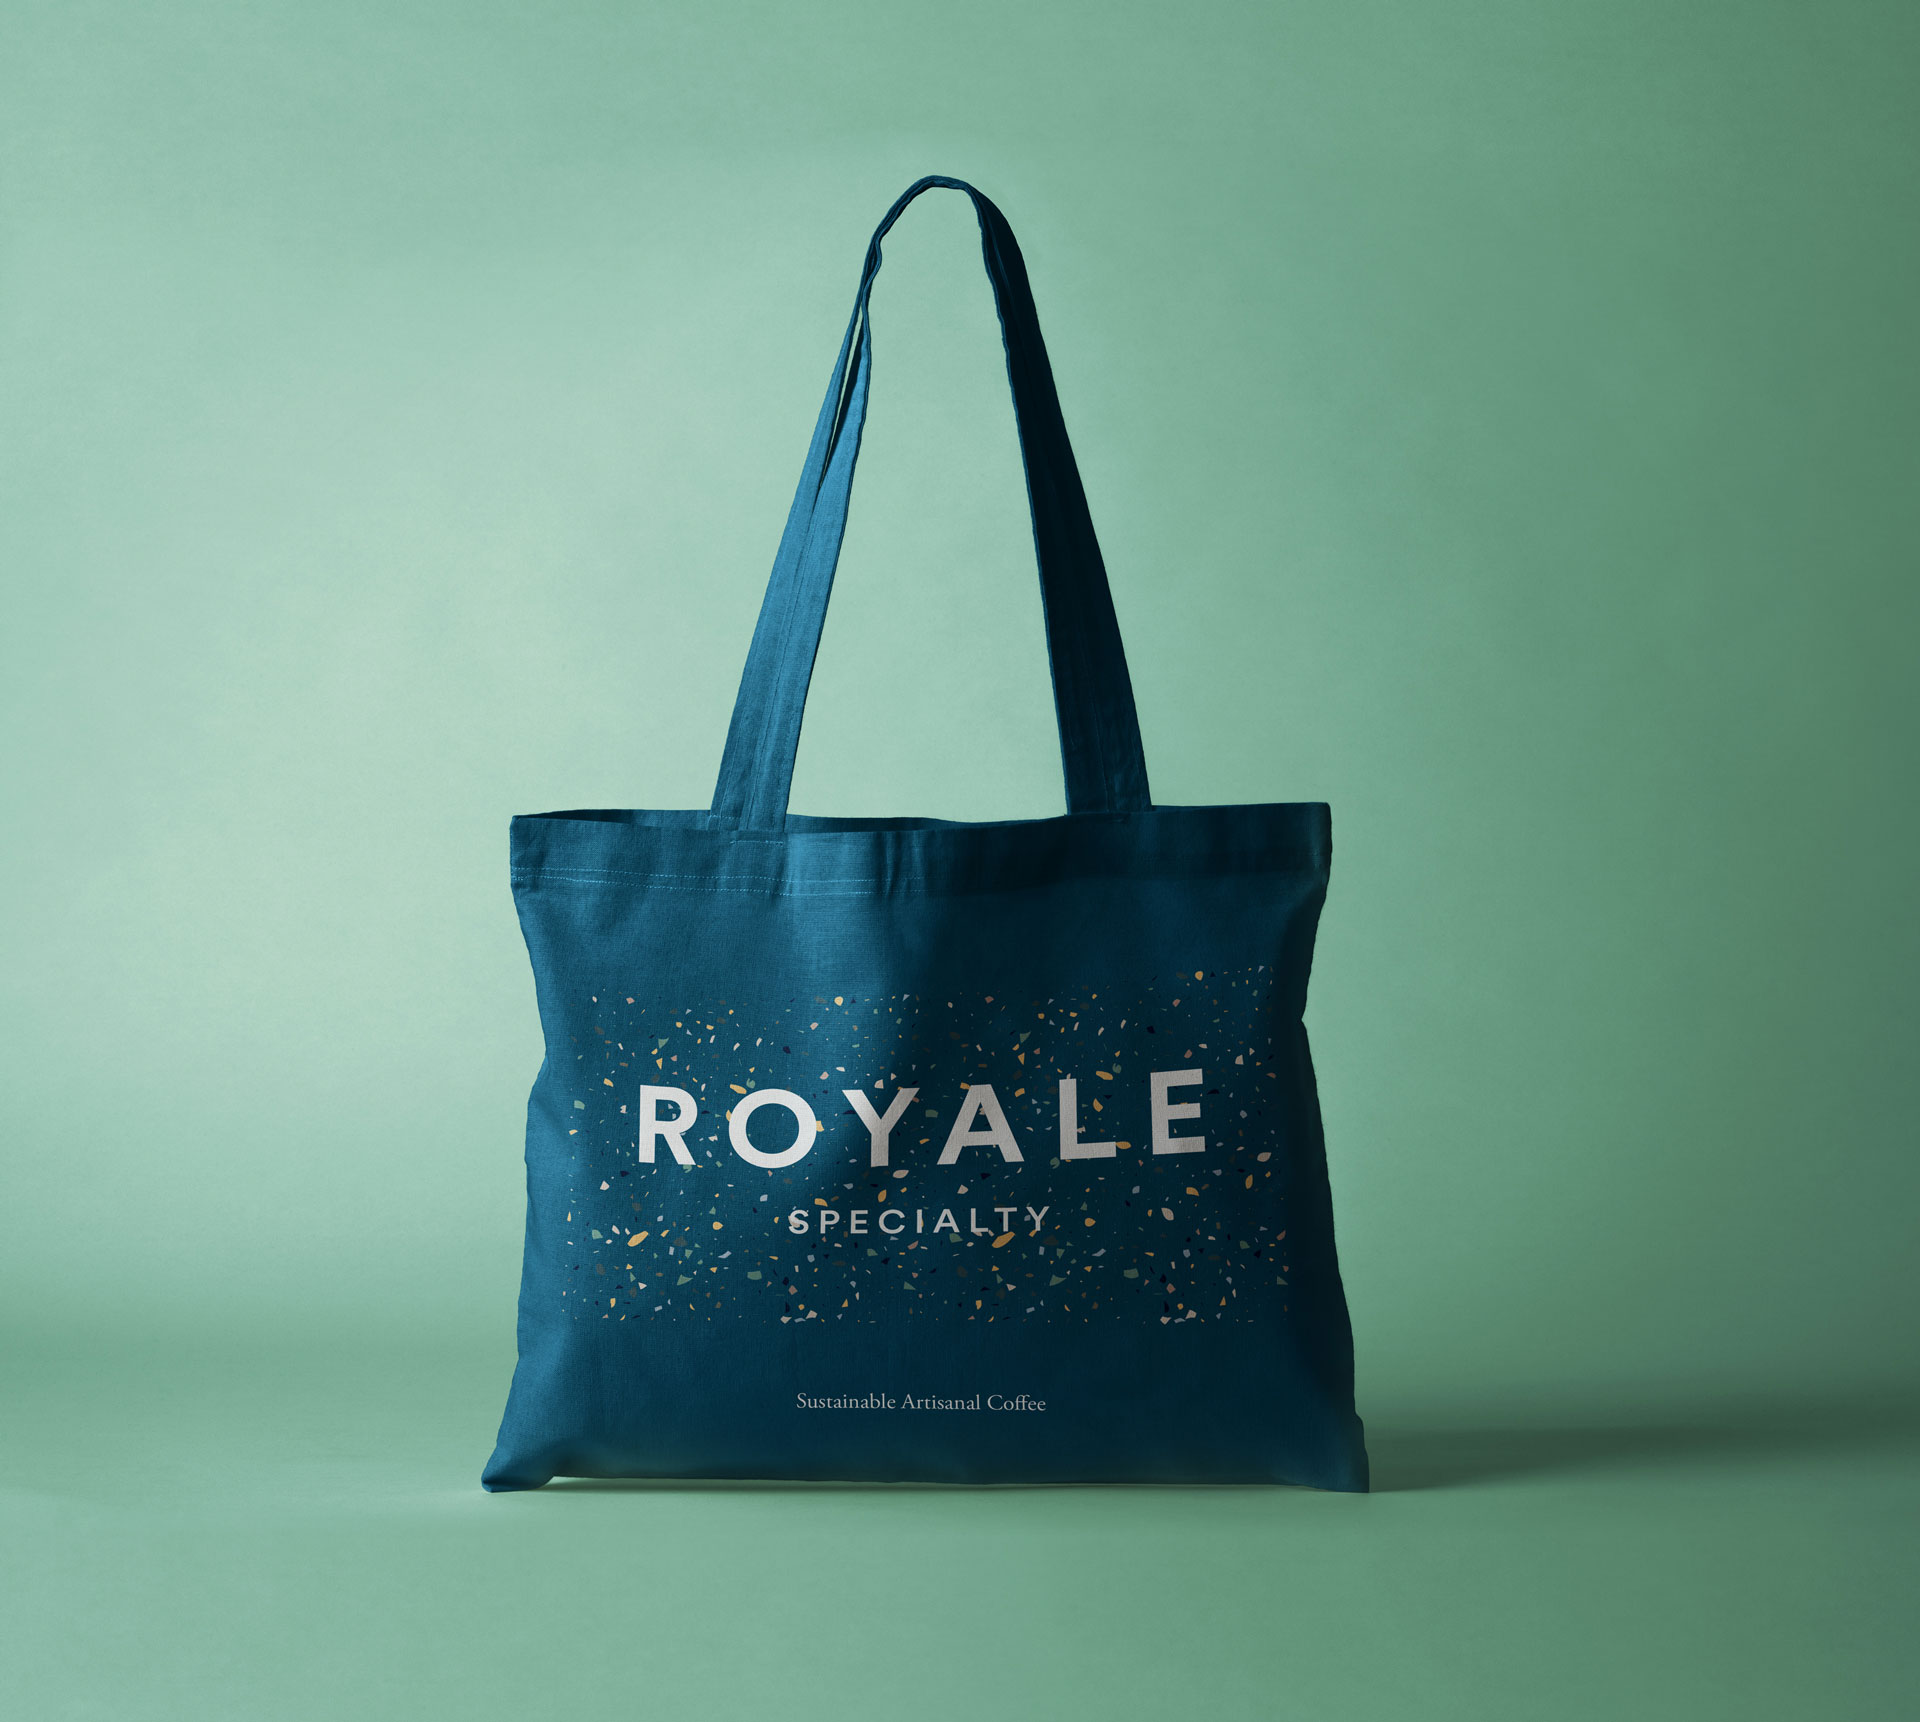 Nectar-&-Co-Royale-Specialty-Cafe-Brand-Design-Tote-Bag.jpg